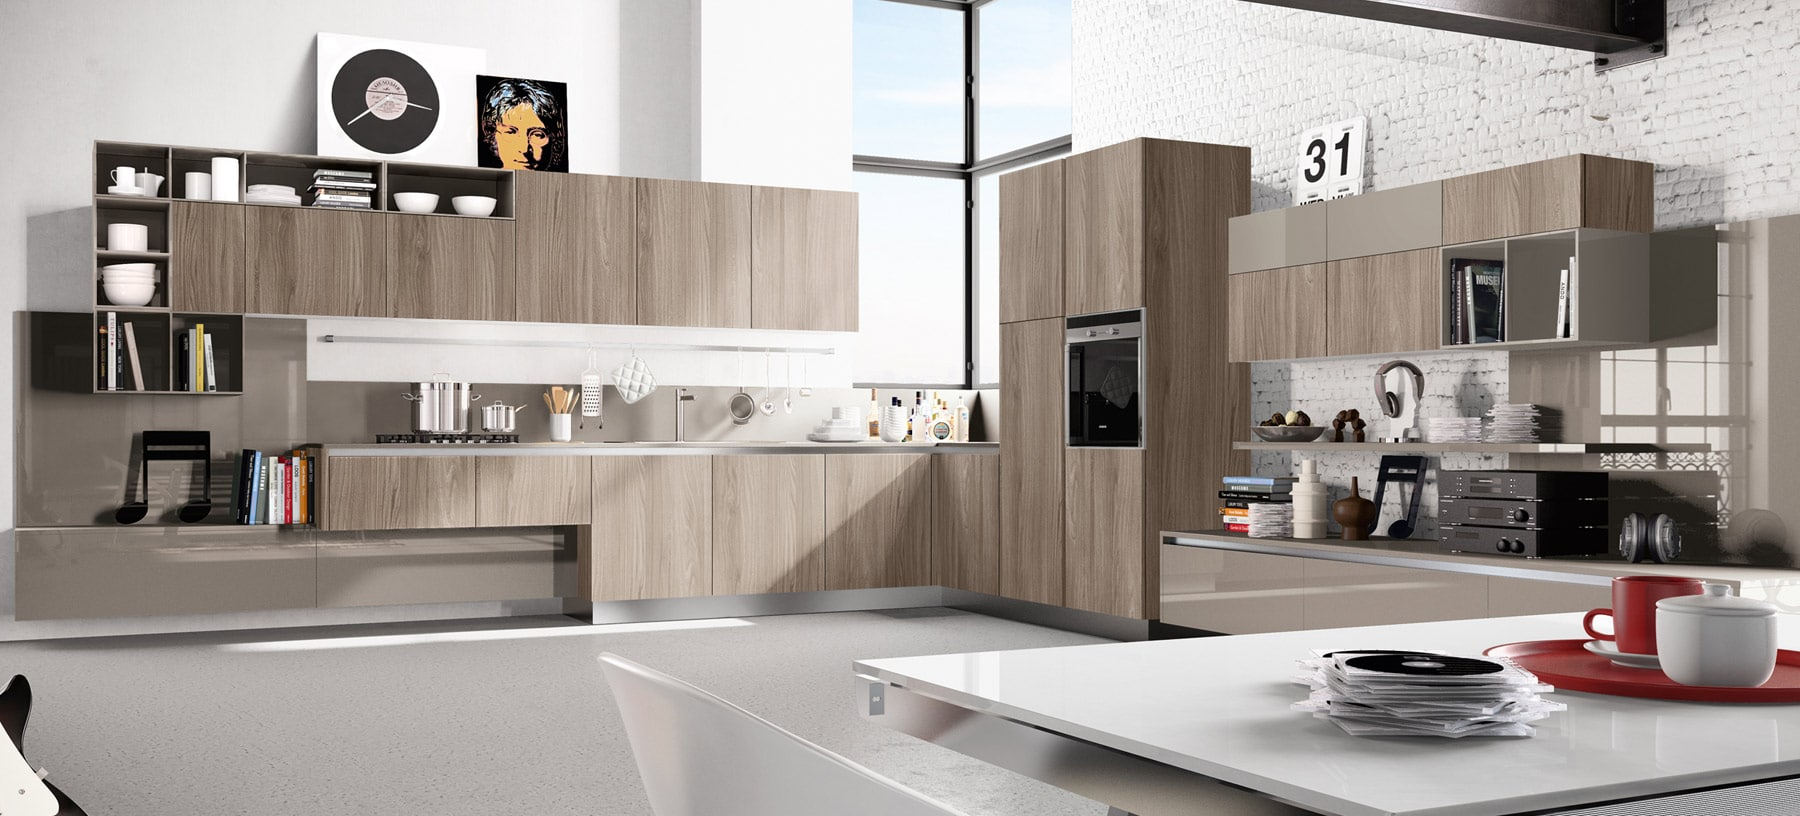 Dise o de cocinas modernas al estilo arte pop construye for Photos of new kitchen designs